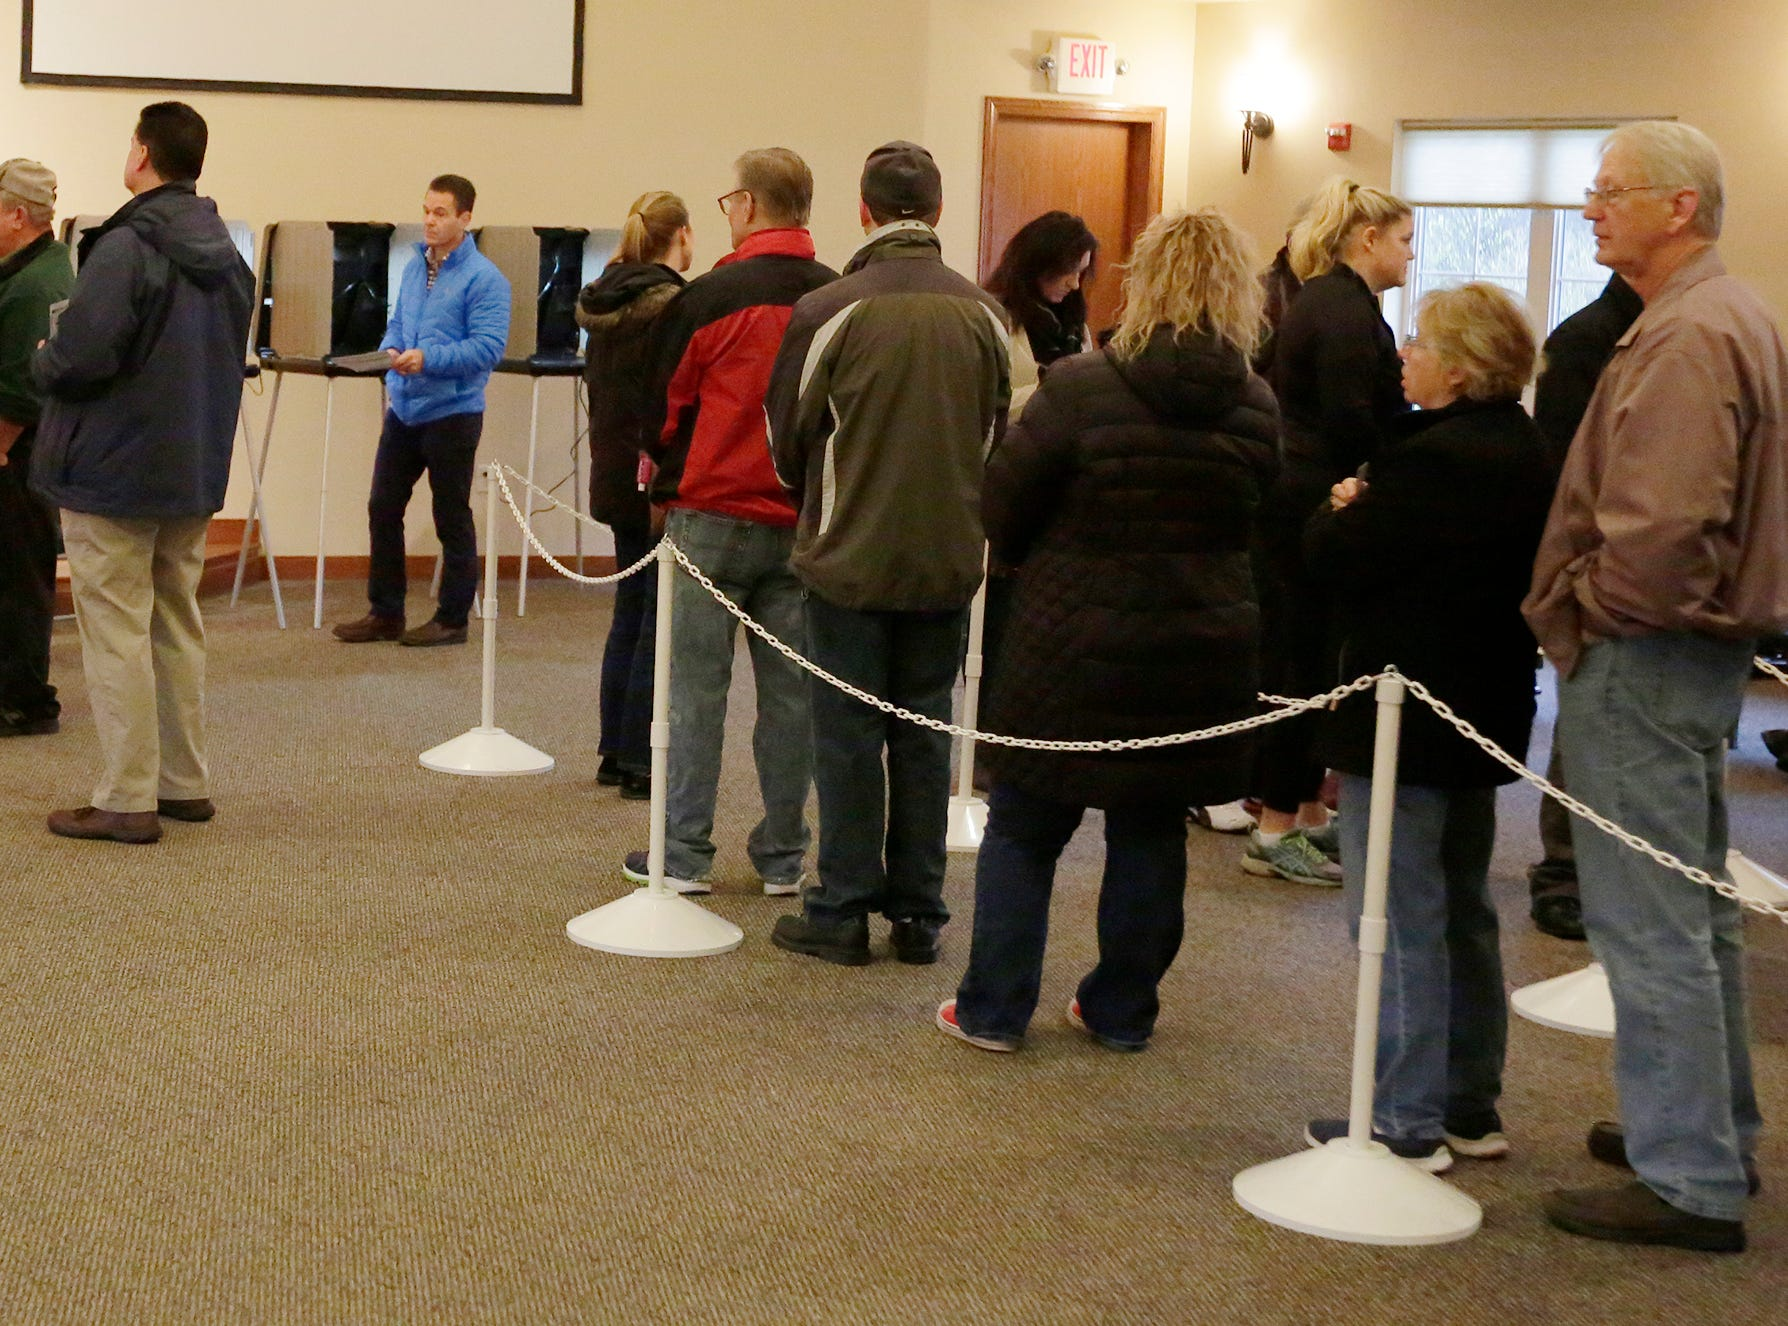 When the polls opened up at 7 a.m. there were long lines waiting to vote at voting district 10 at Living Water Lutheran Church. The mid-term voting kept poll workers busy as voters waited in lines at most polling stations in Oshkosh, Wis., Tuesday, November 6, 2018.  